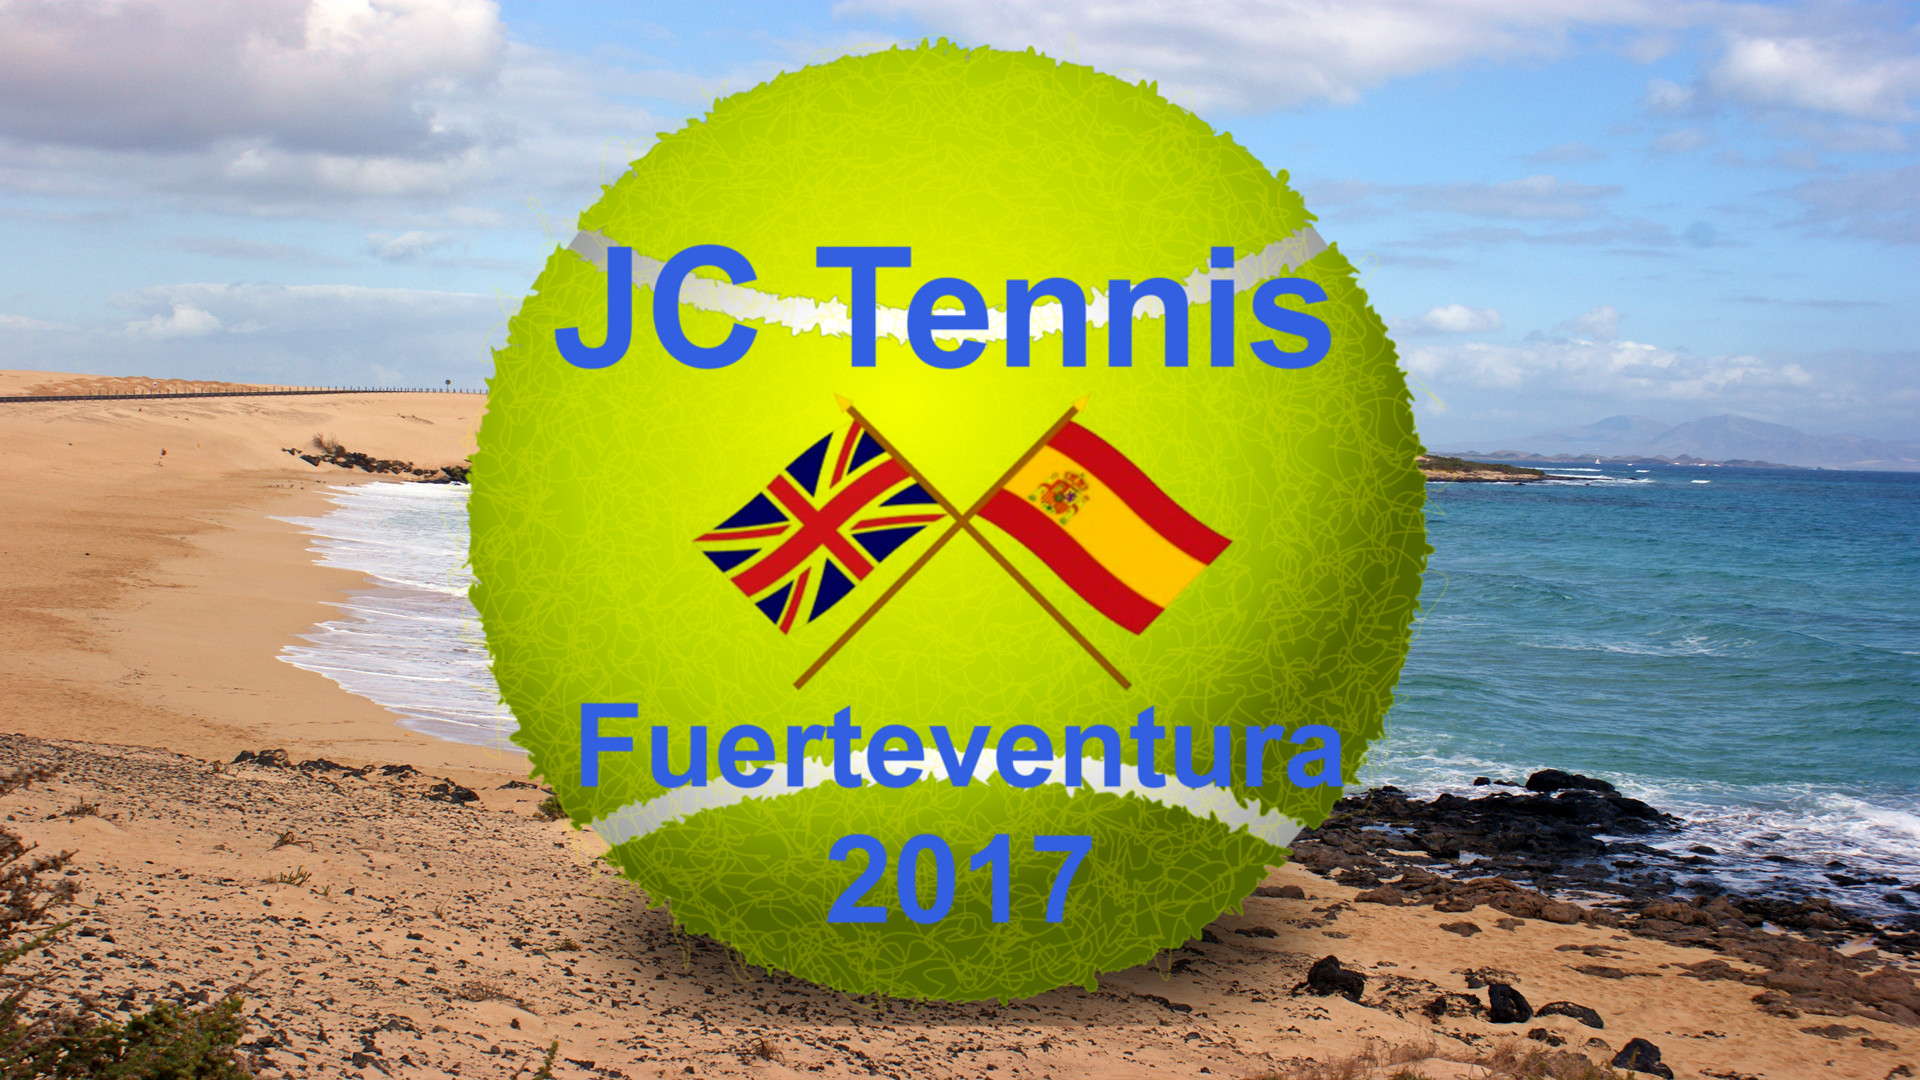 JC Tennis Fueteventura